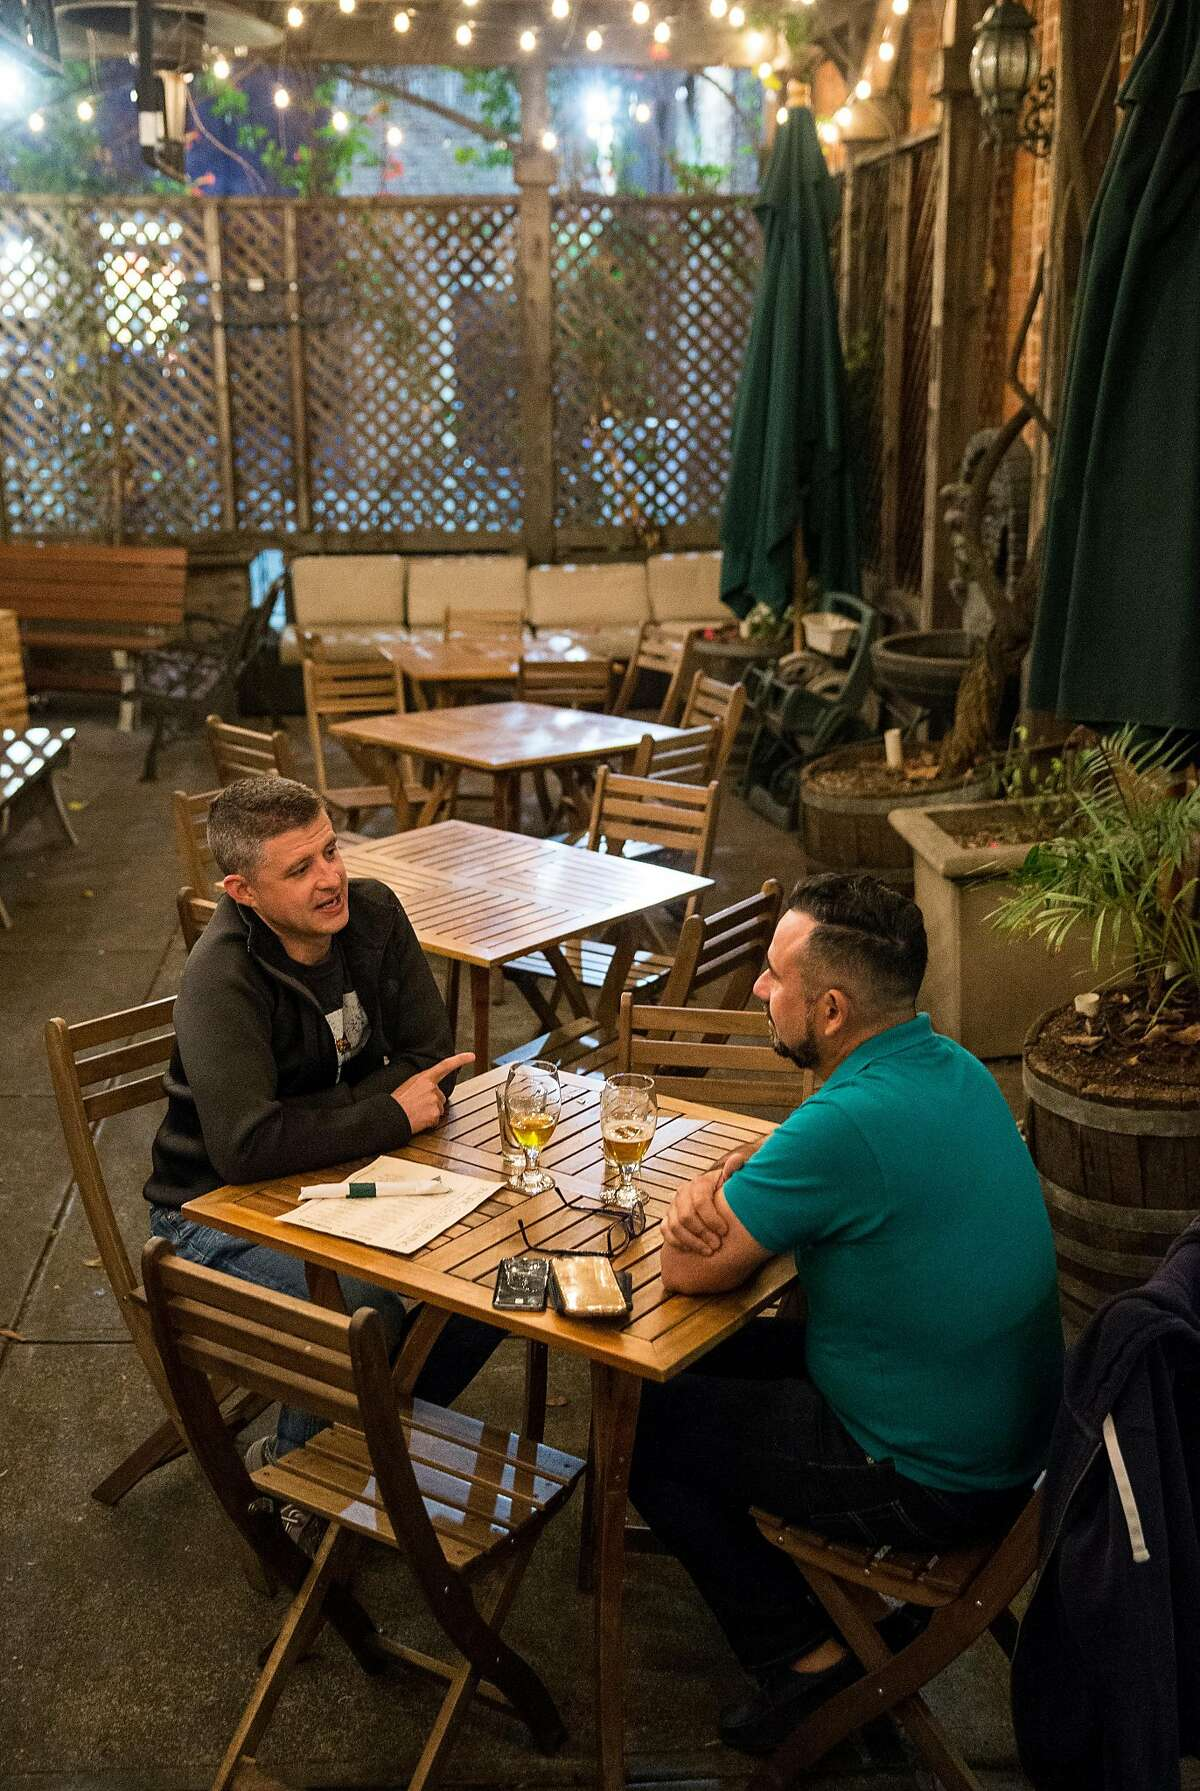 Mike Drusano (left) and German Vivanco have a drink in the outdoor backyard beer garden at Pacific Coast Brewing in Oakland, Calif., on Friday, June 2, 2017. The brewery, restaurant and bar has over 20 beers on tap including both their own brews and guest beers.